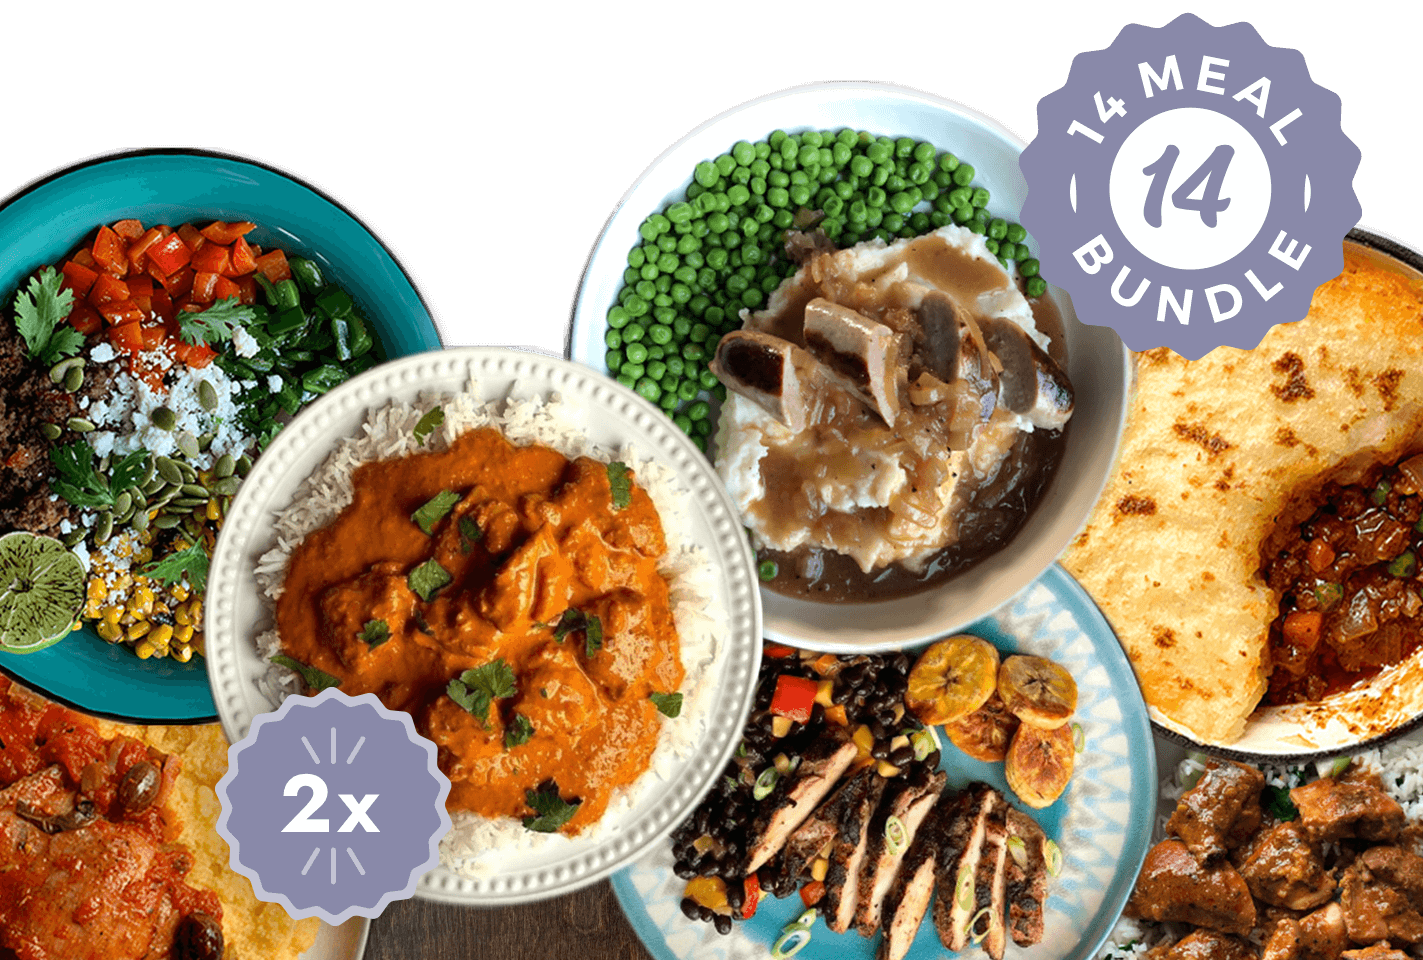 Around The World in 7 Days (14-meal Bundle)